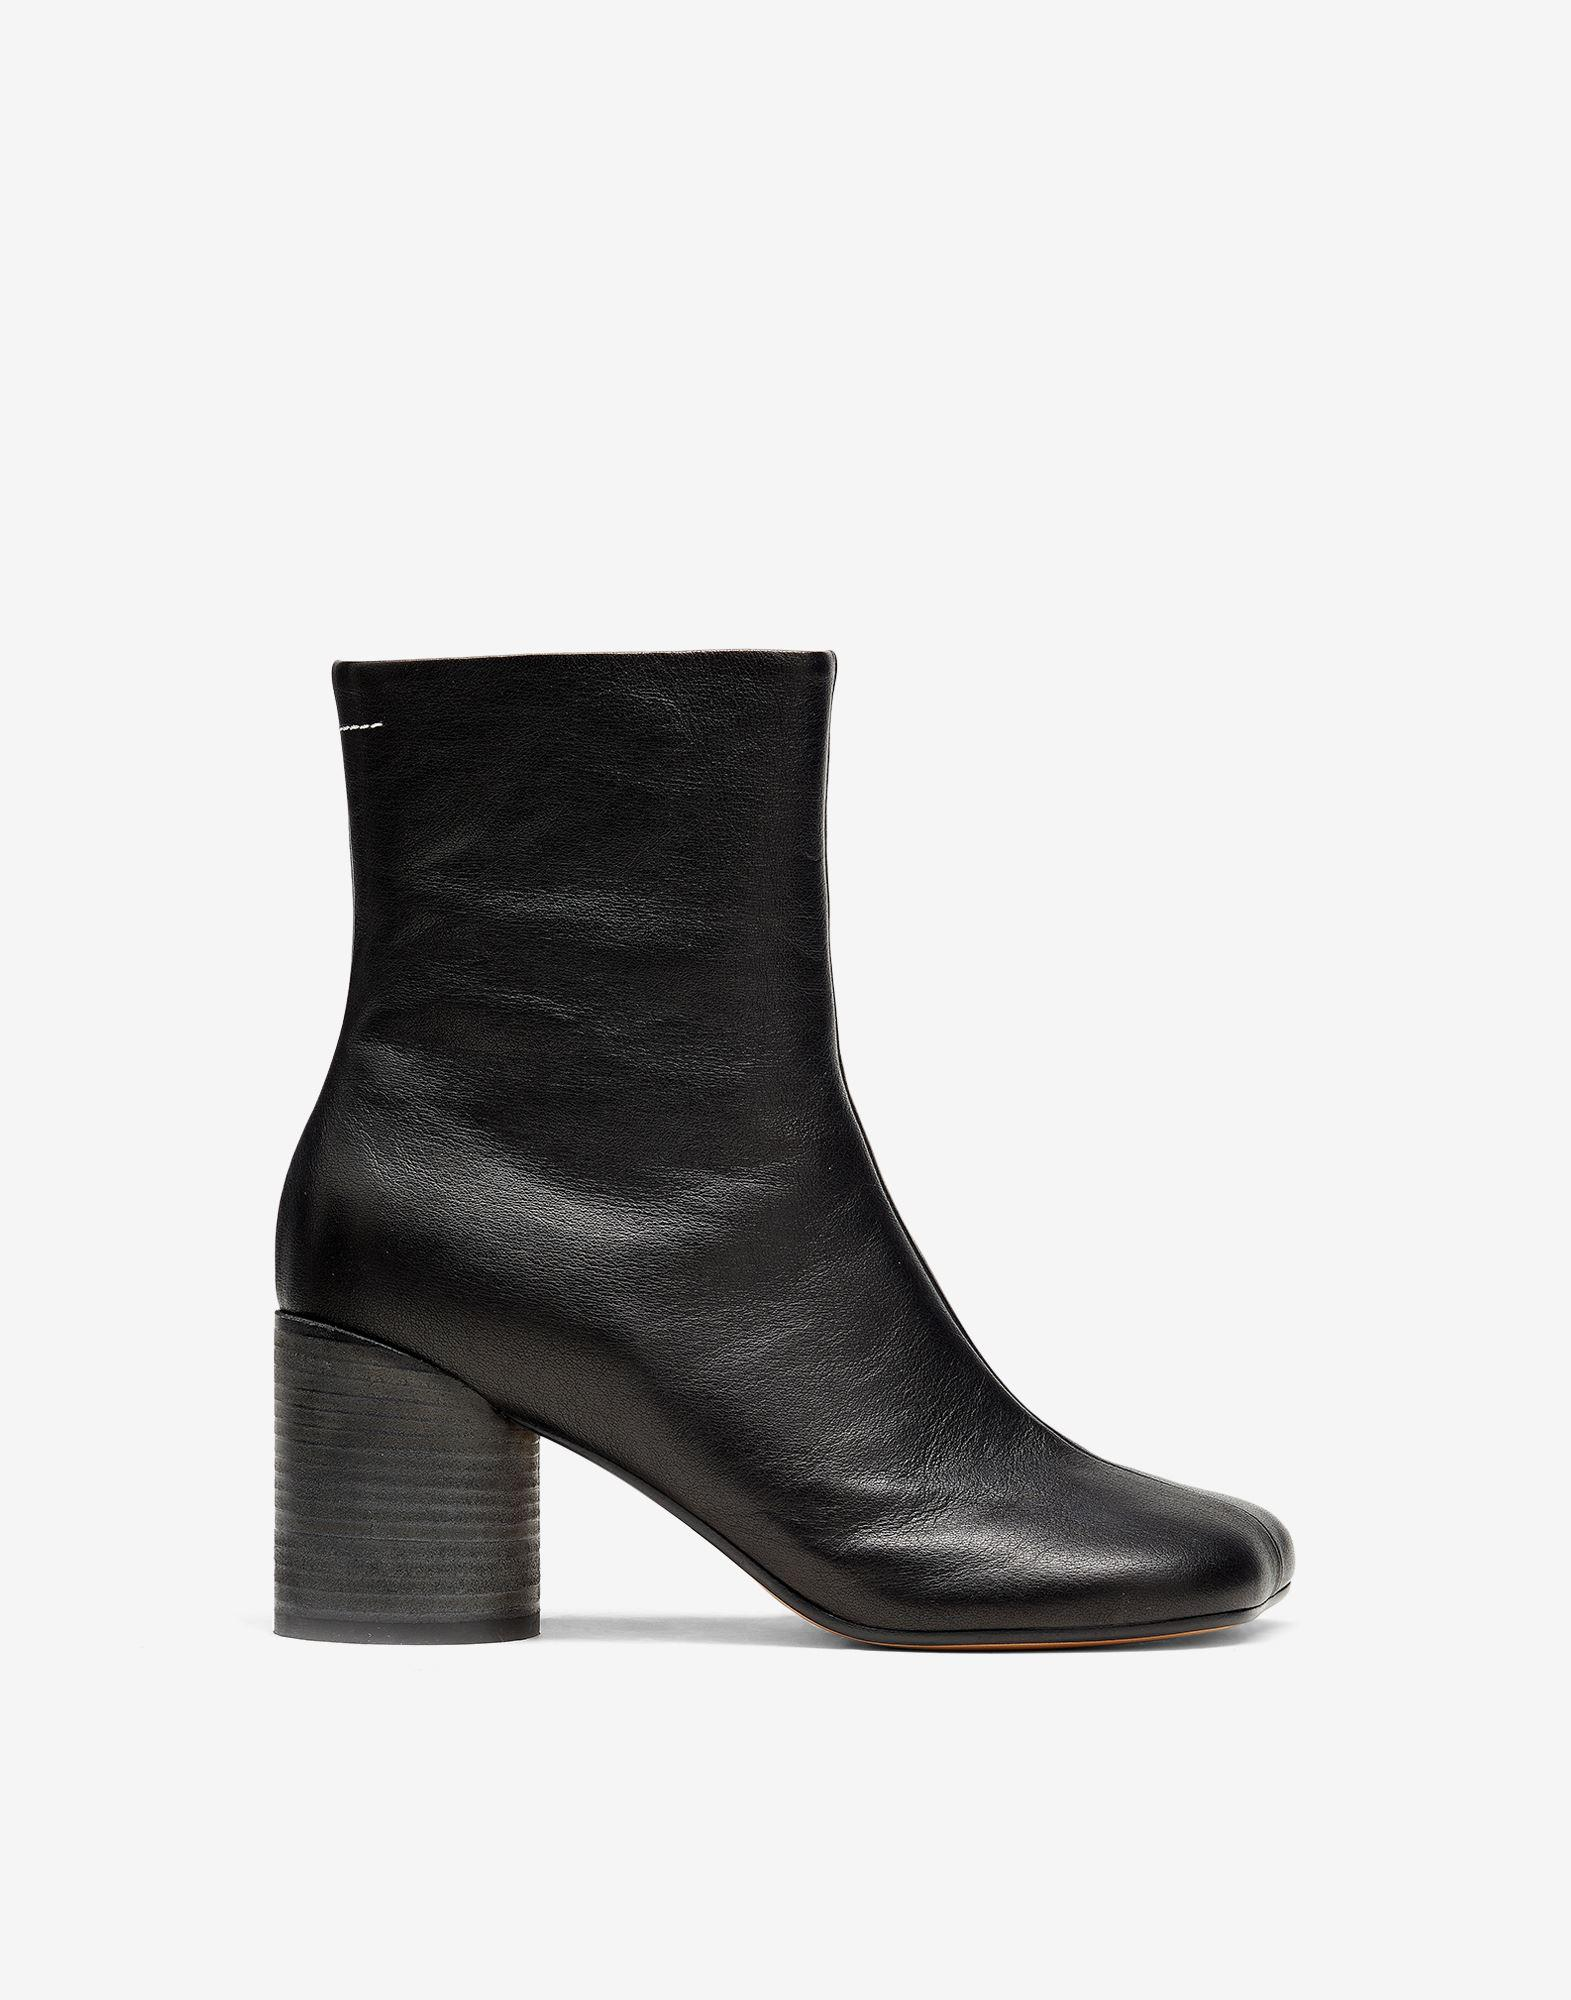 Anatomic ankle boots